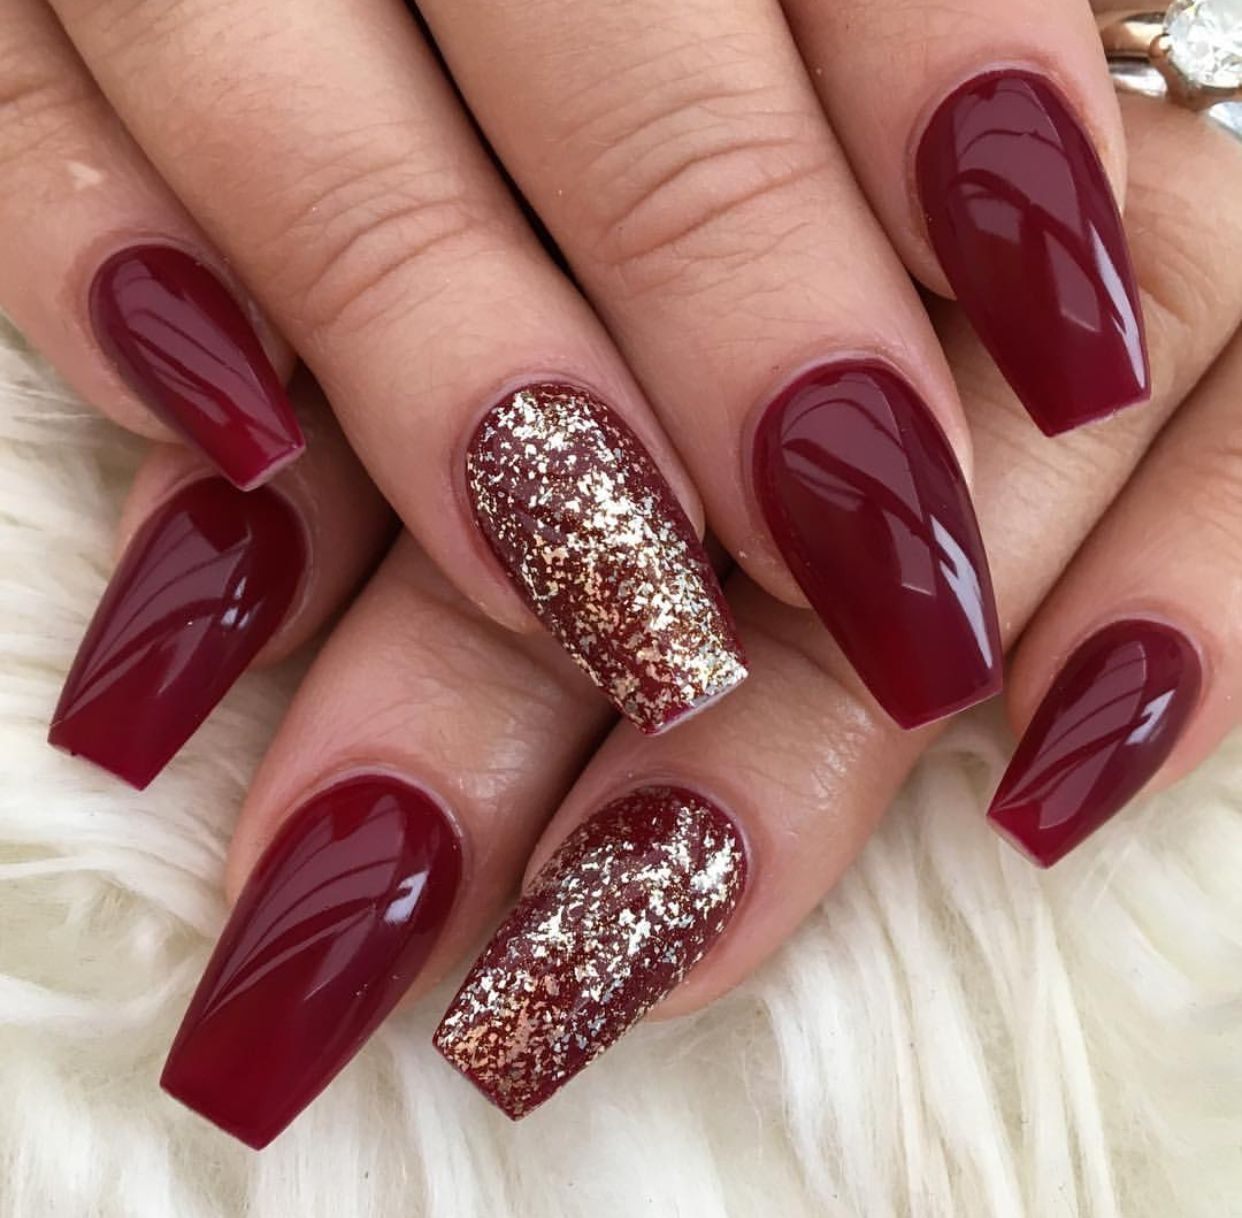 Pin By Shyamm Curry On Nails Wine Nails Christmas Nails Acrylic Red Acrylic Nails